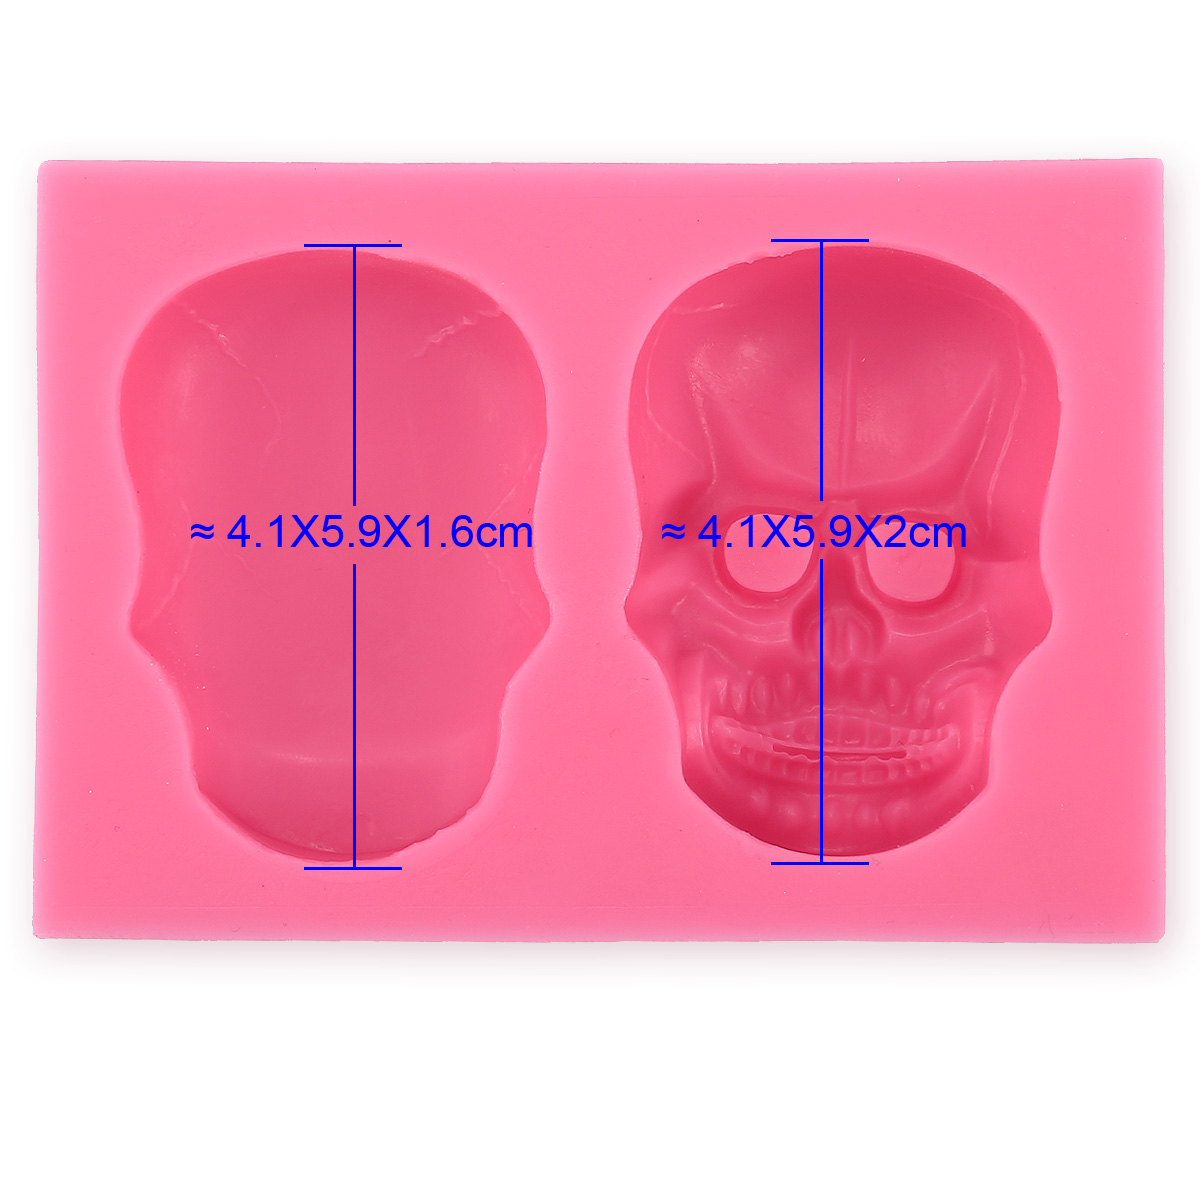 Fondant Cake Molds Uk : 3D Halloween Skull Silicone Fondant Mould Cake Chocolate ...